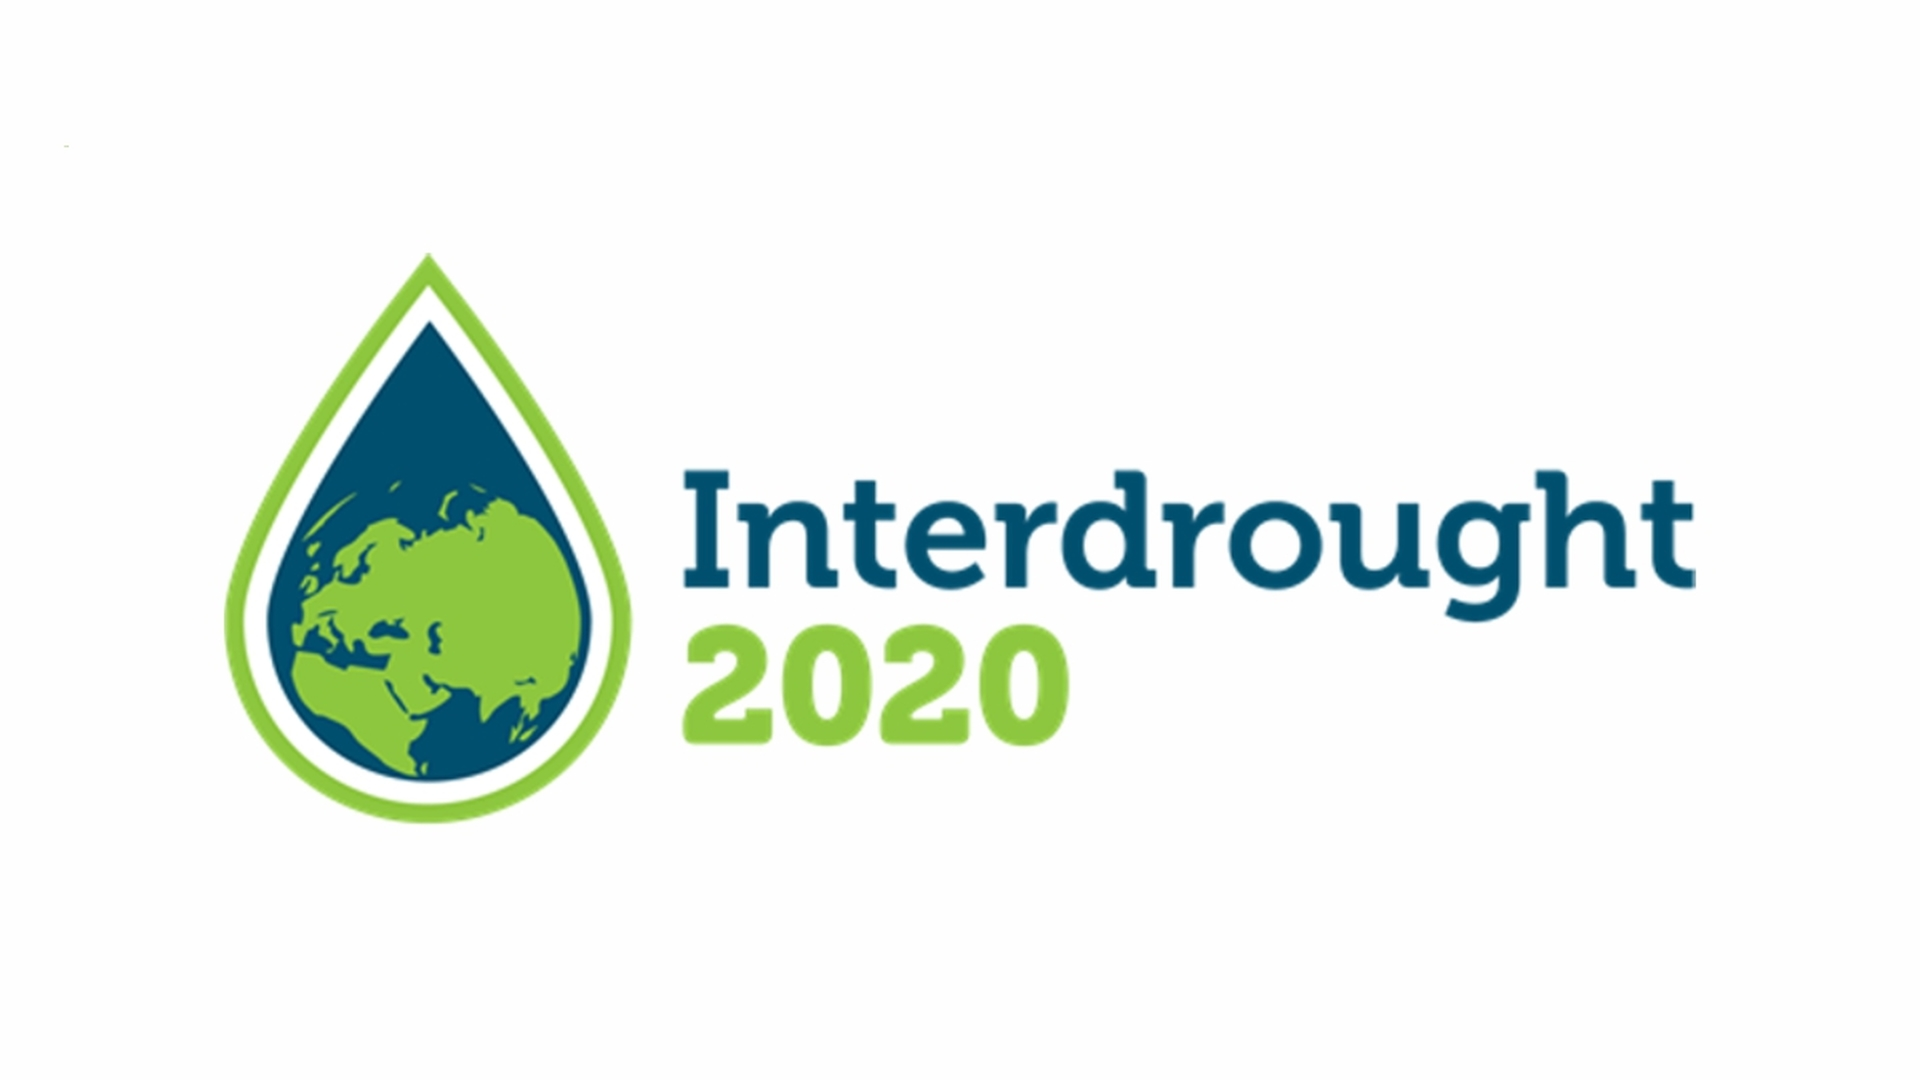 Interdrought 2020